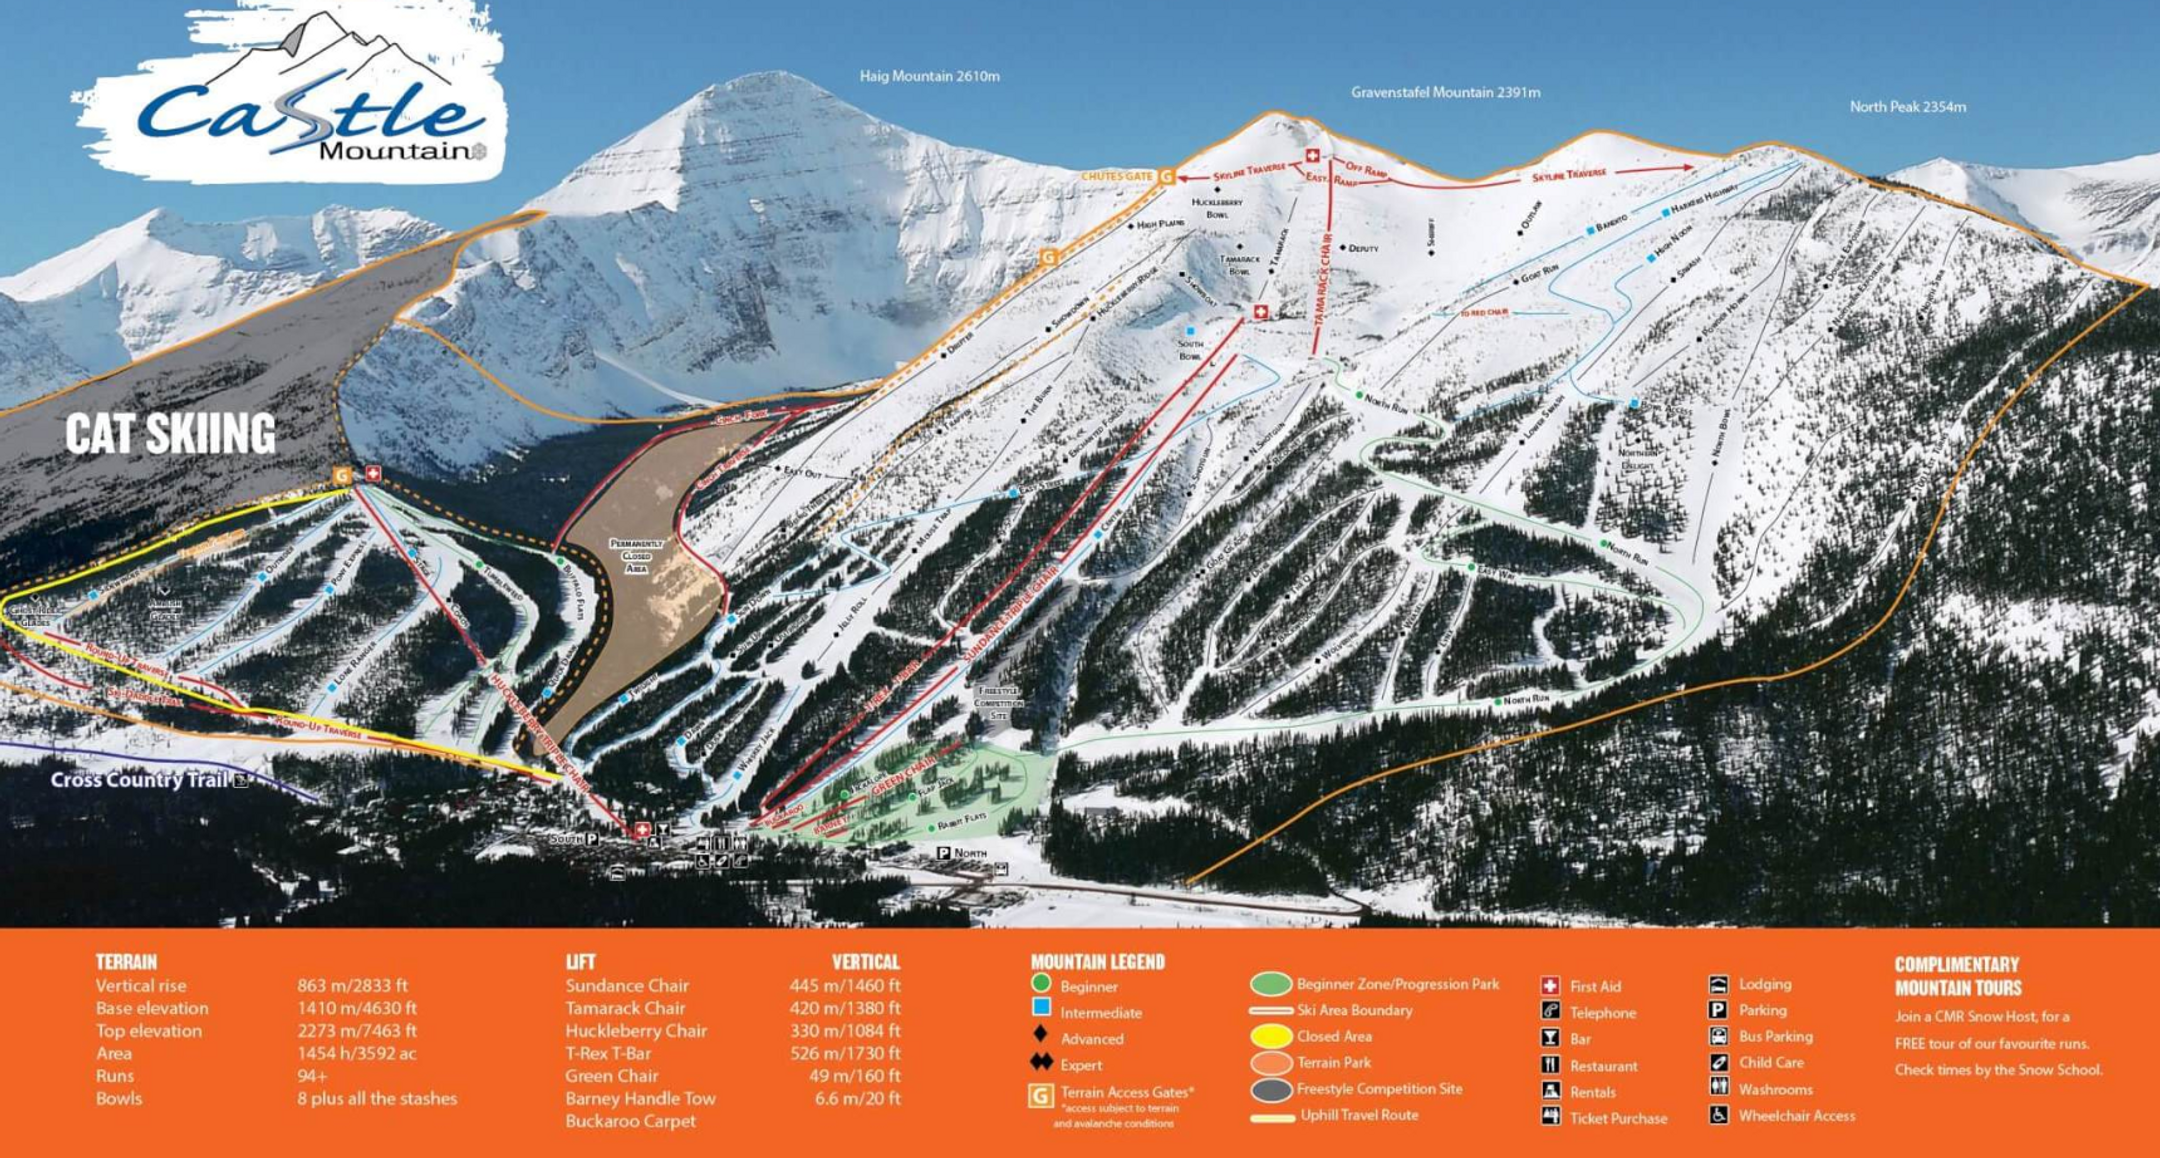 Castle Mountain ski-resort-trail-map Canada ripatrip